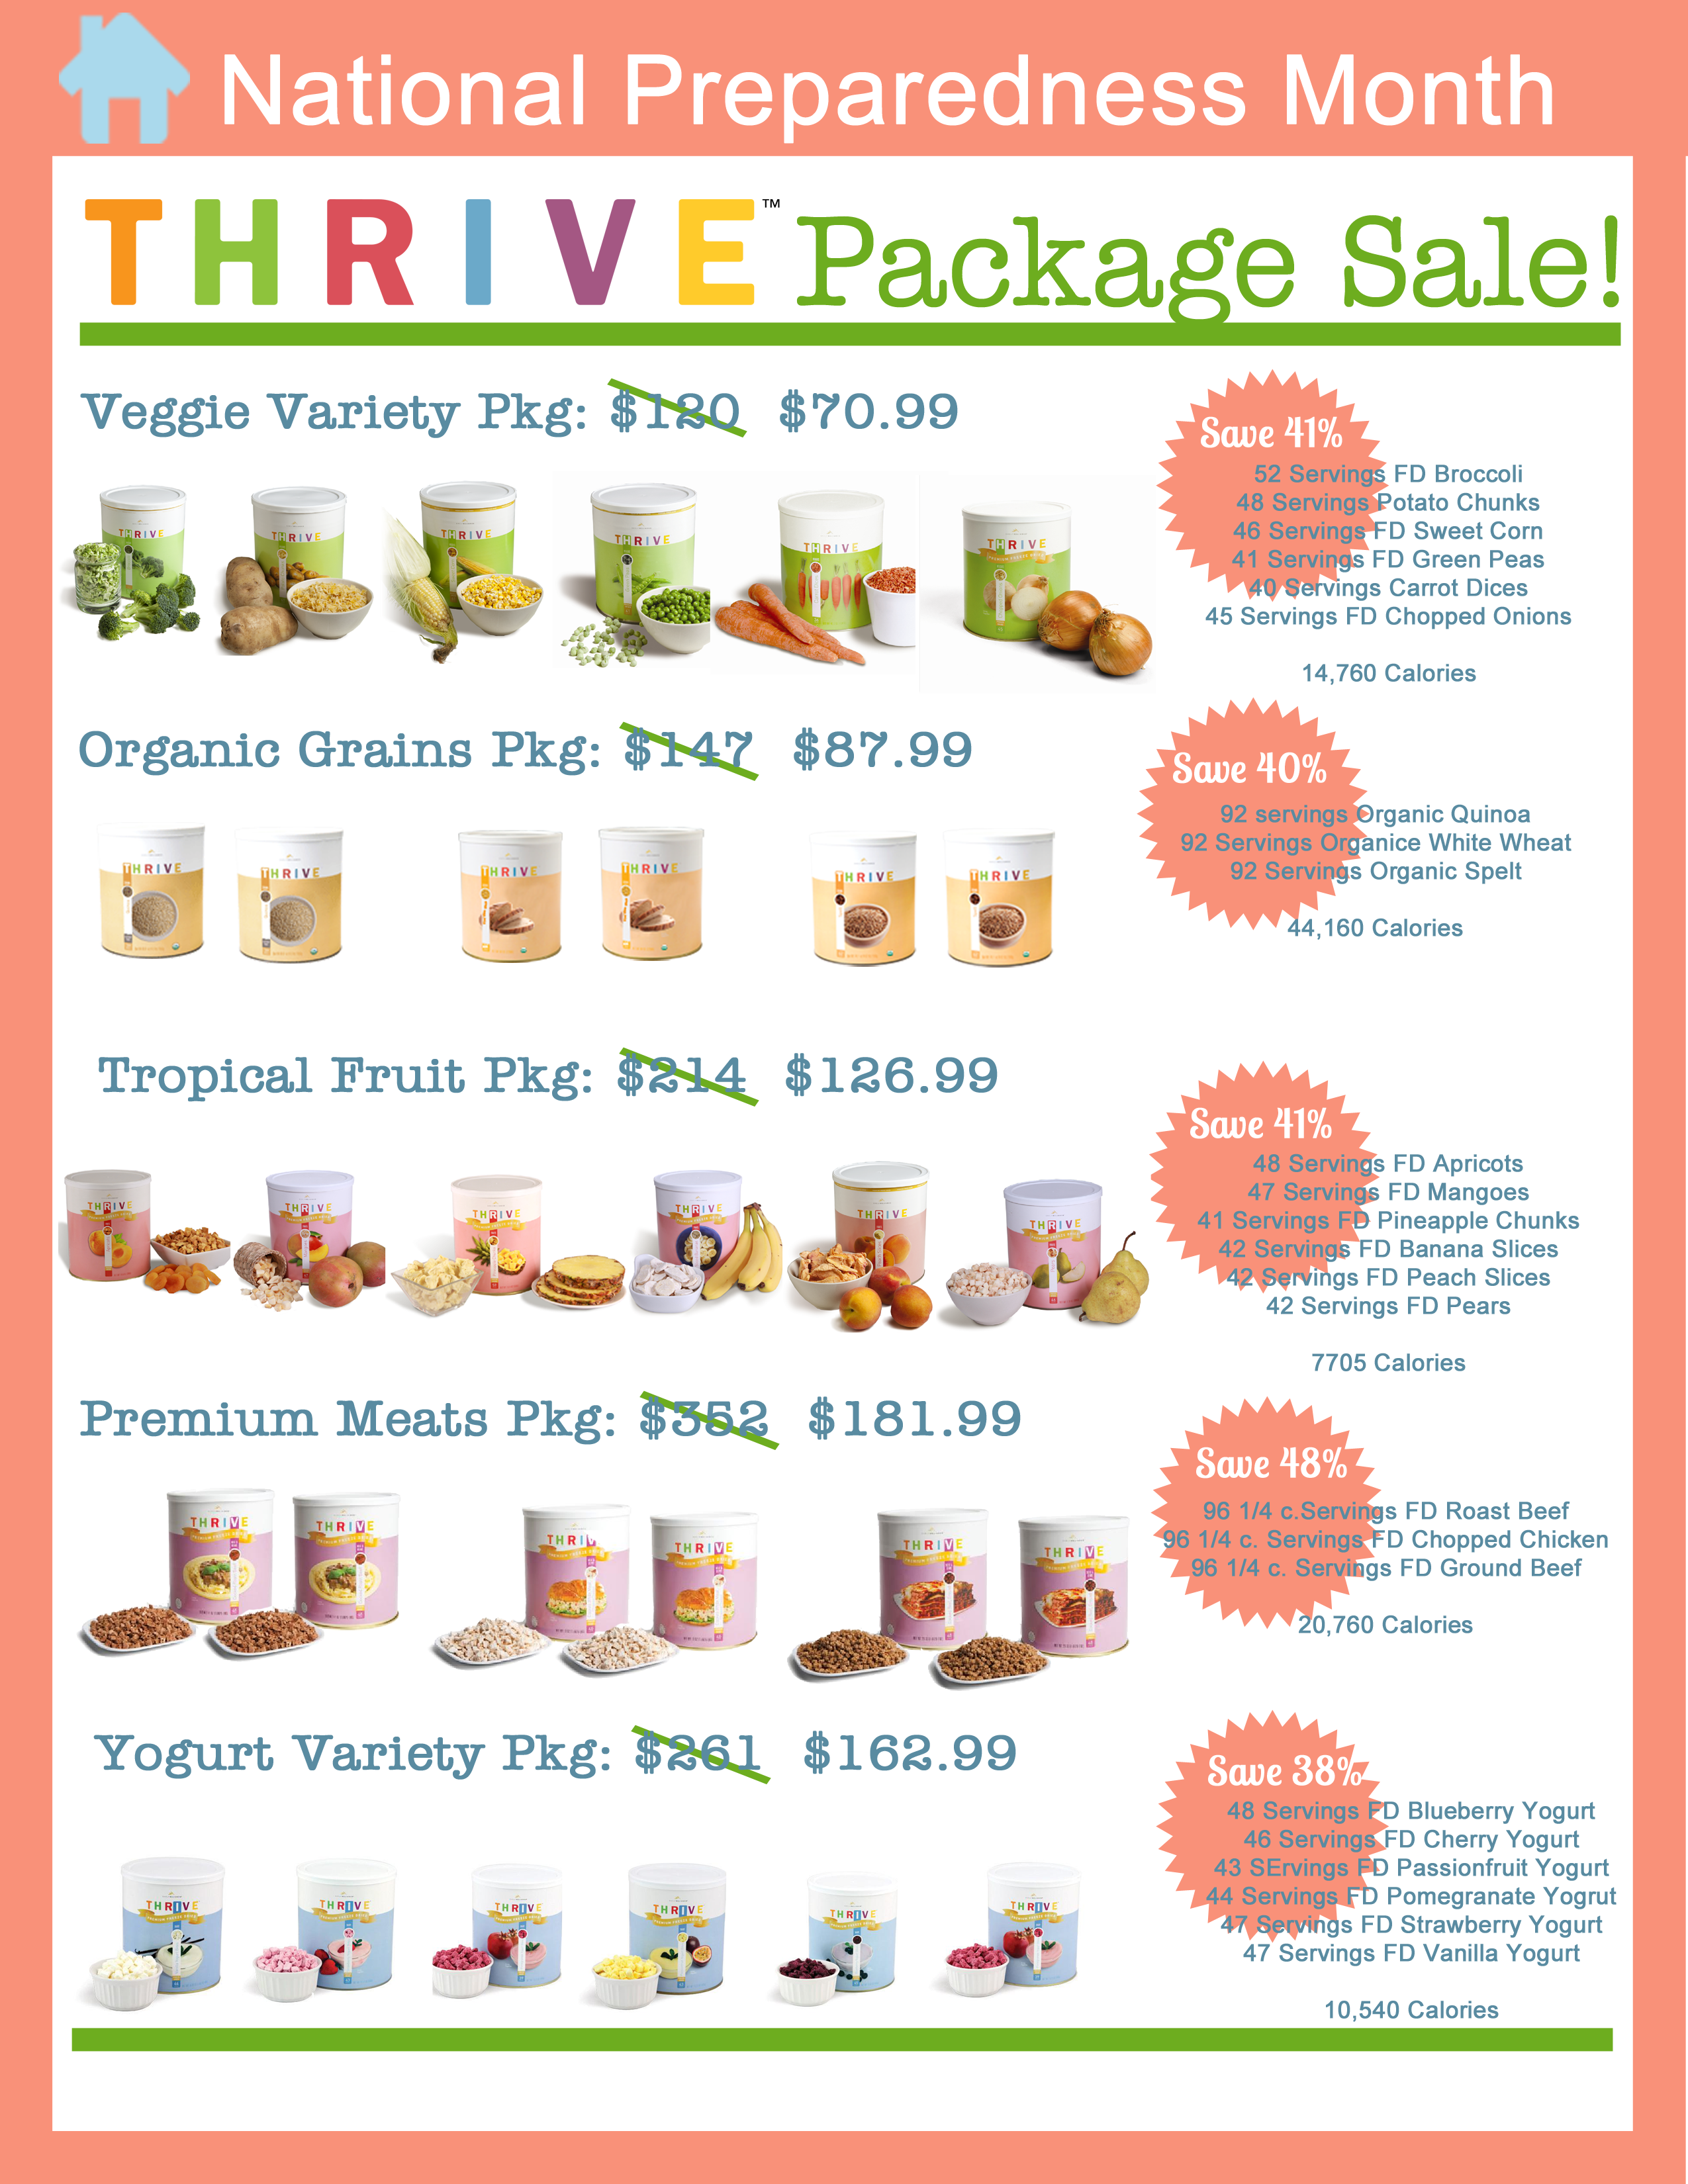 Featured Thrive Food Package